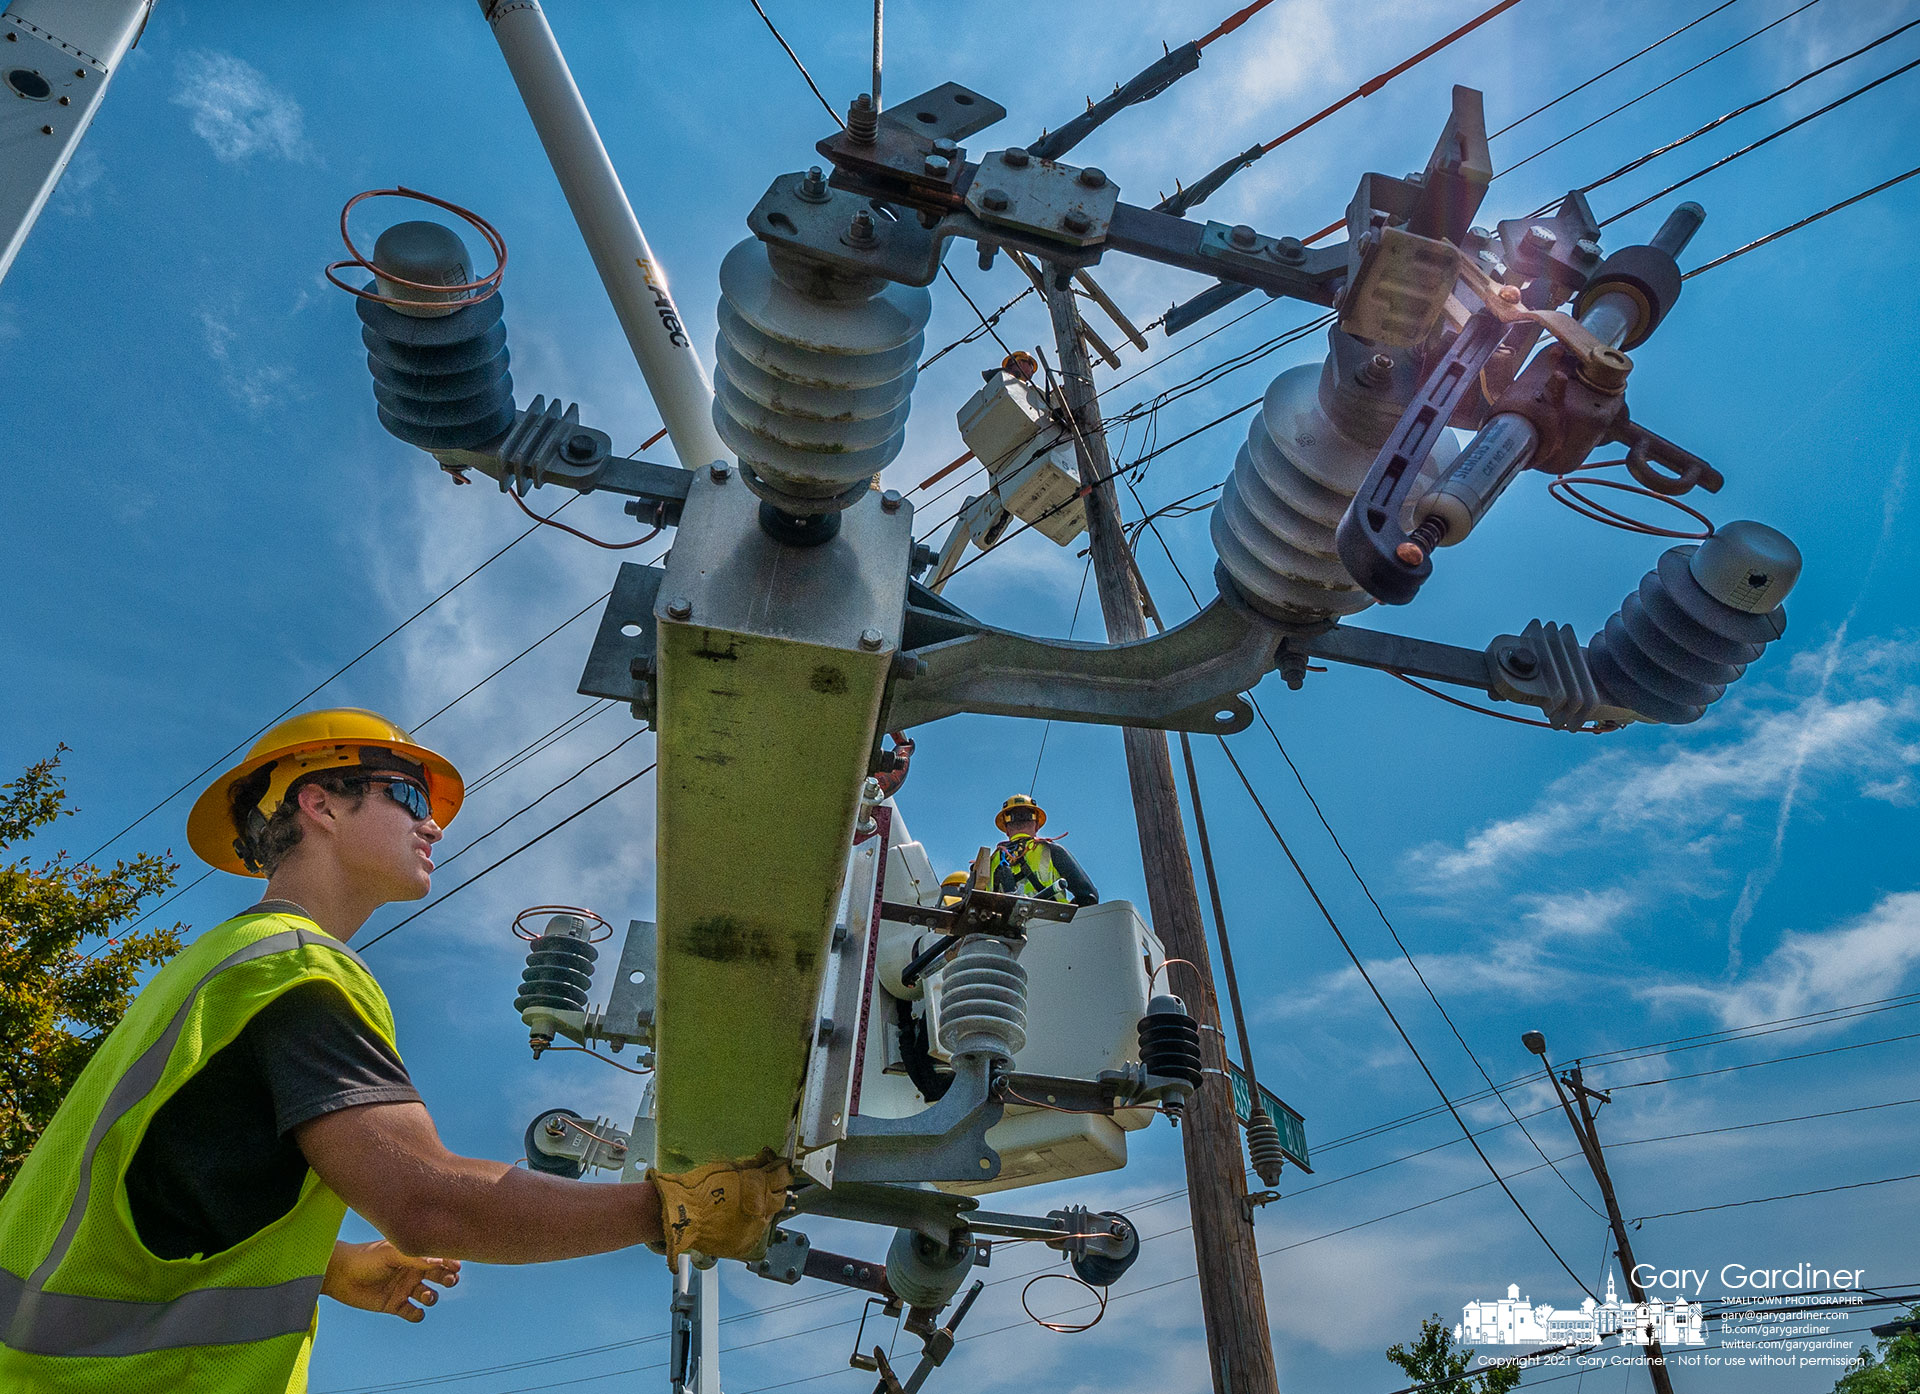 A city electric crew replaces a worn and damaged switch on a utility pole on Schrock Road. My Final Photo for July 22, 2021,